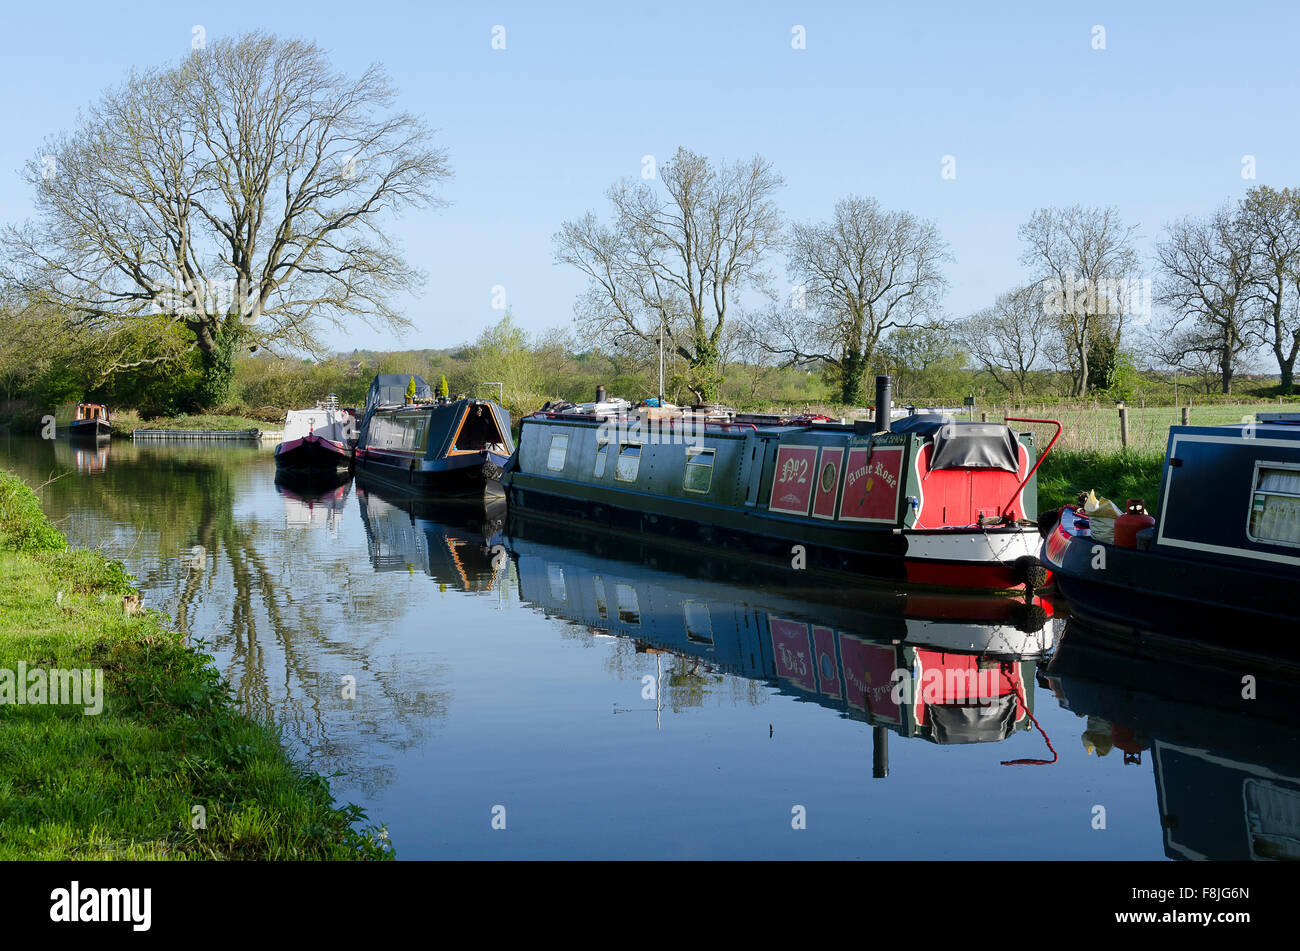 Boats on Oxford Canal, Rugby, Warwickshire, England - Stock Image